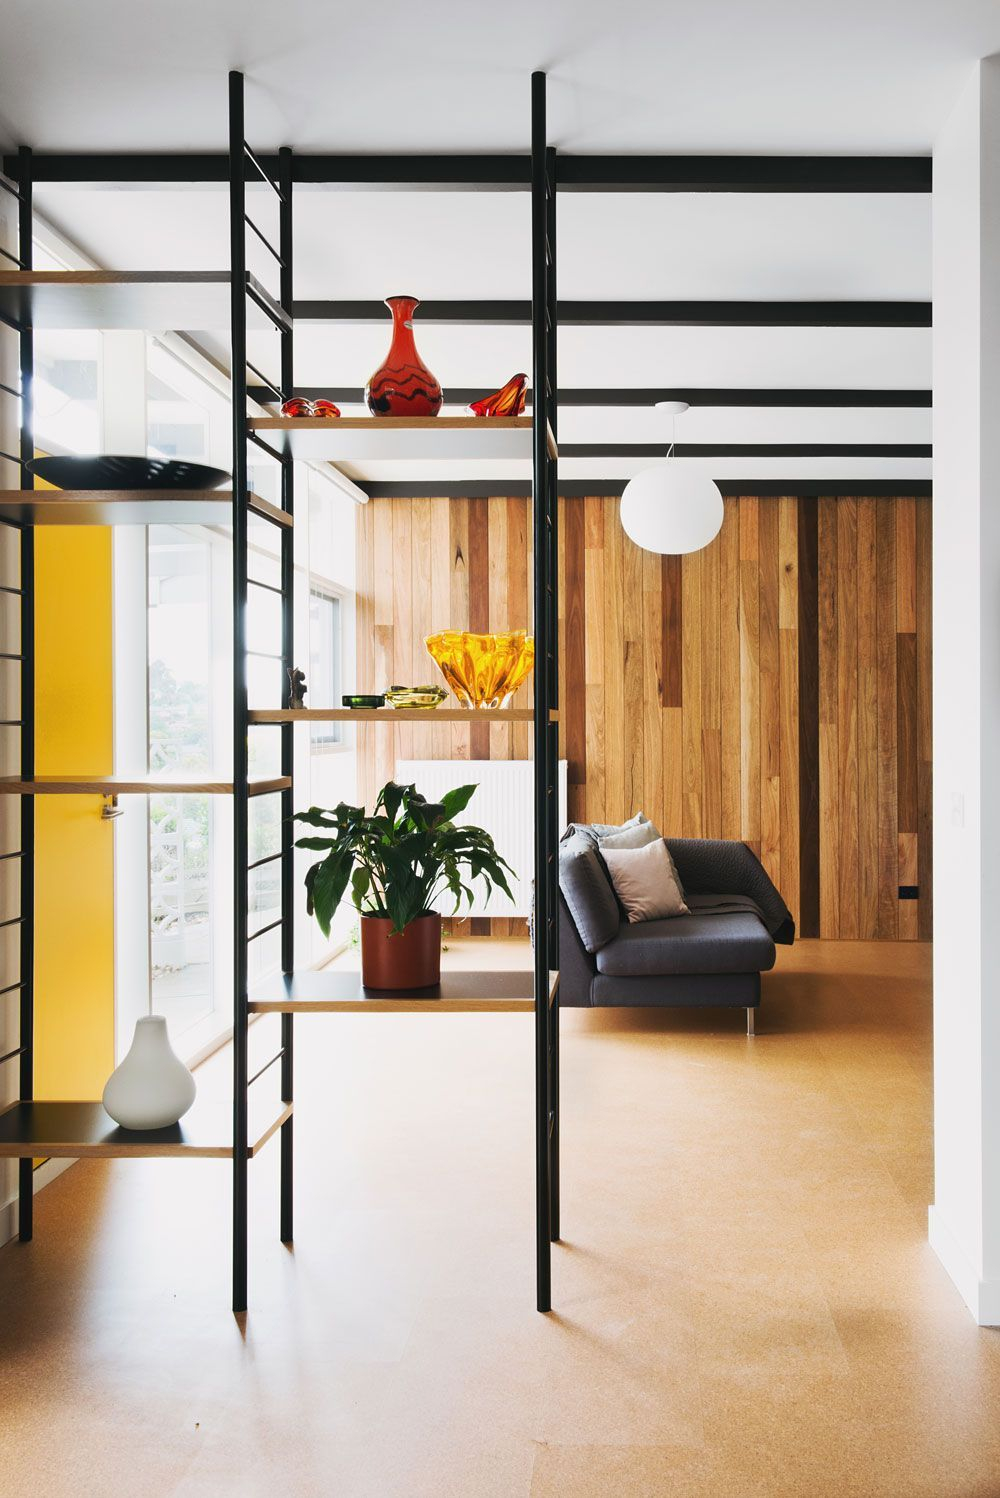 Marvelous 1960S House Renovation Design Ideas With Open Concept To Try33